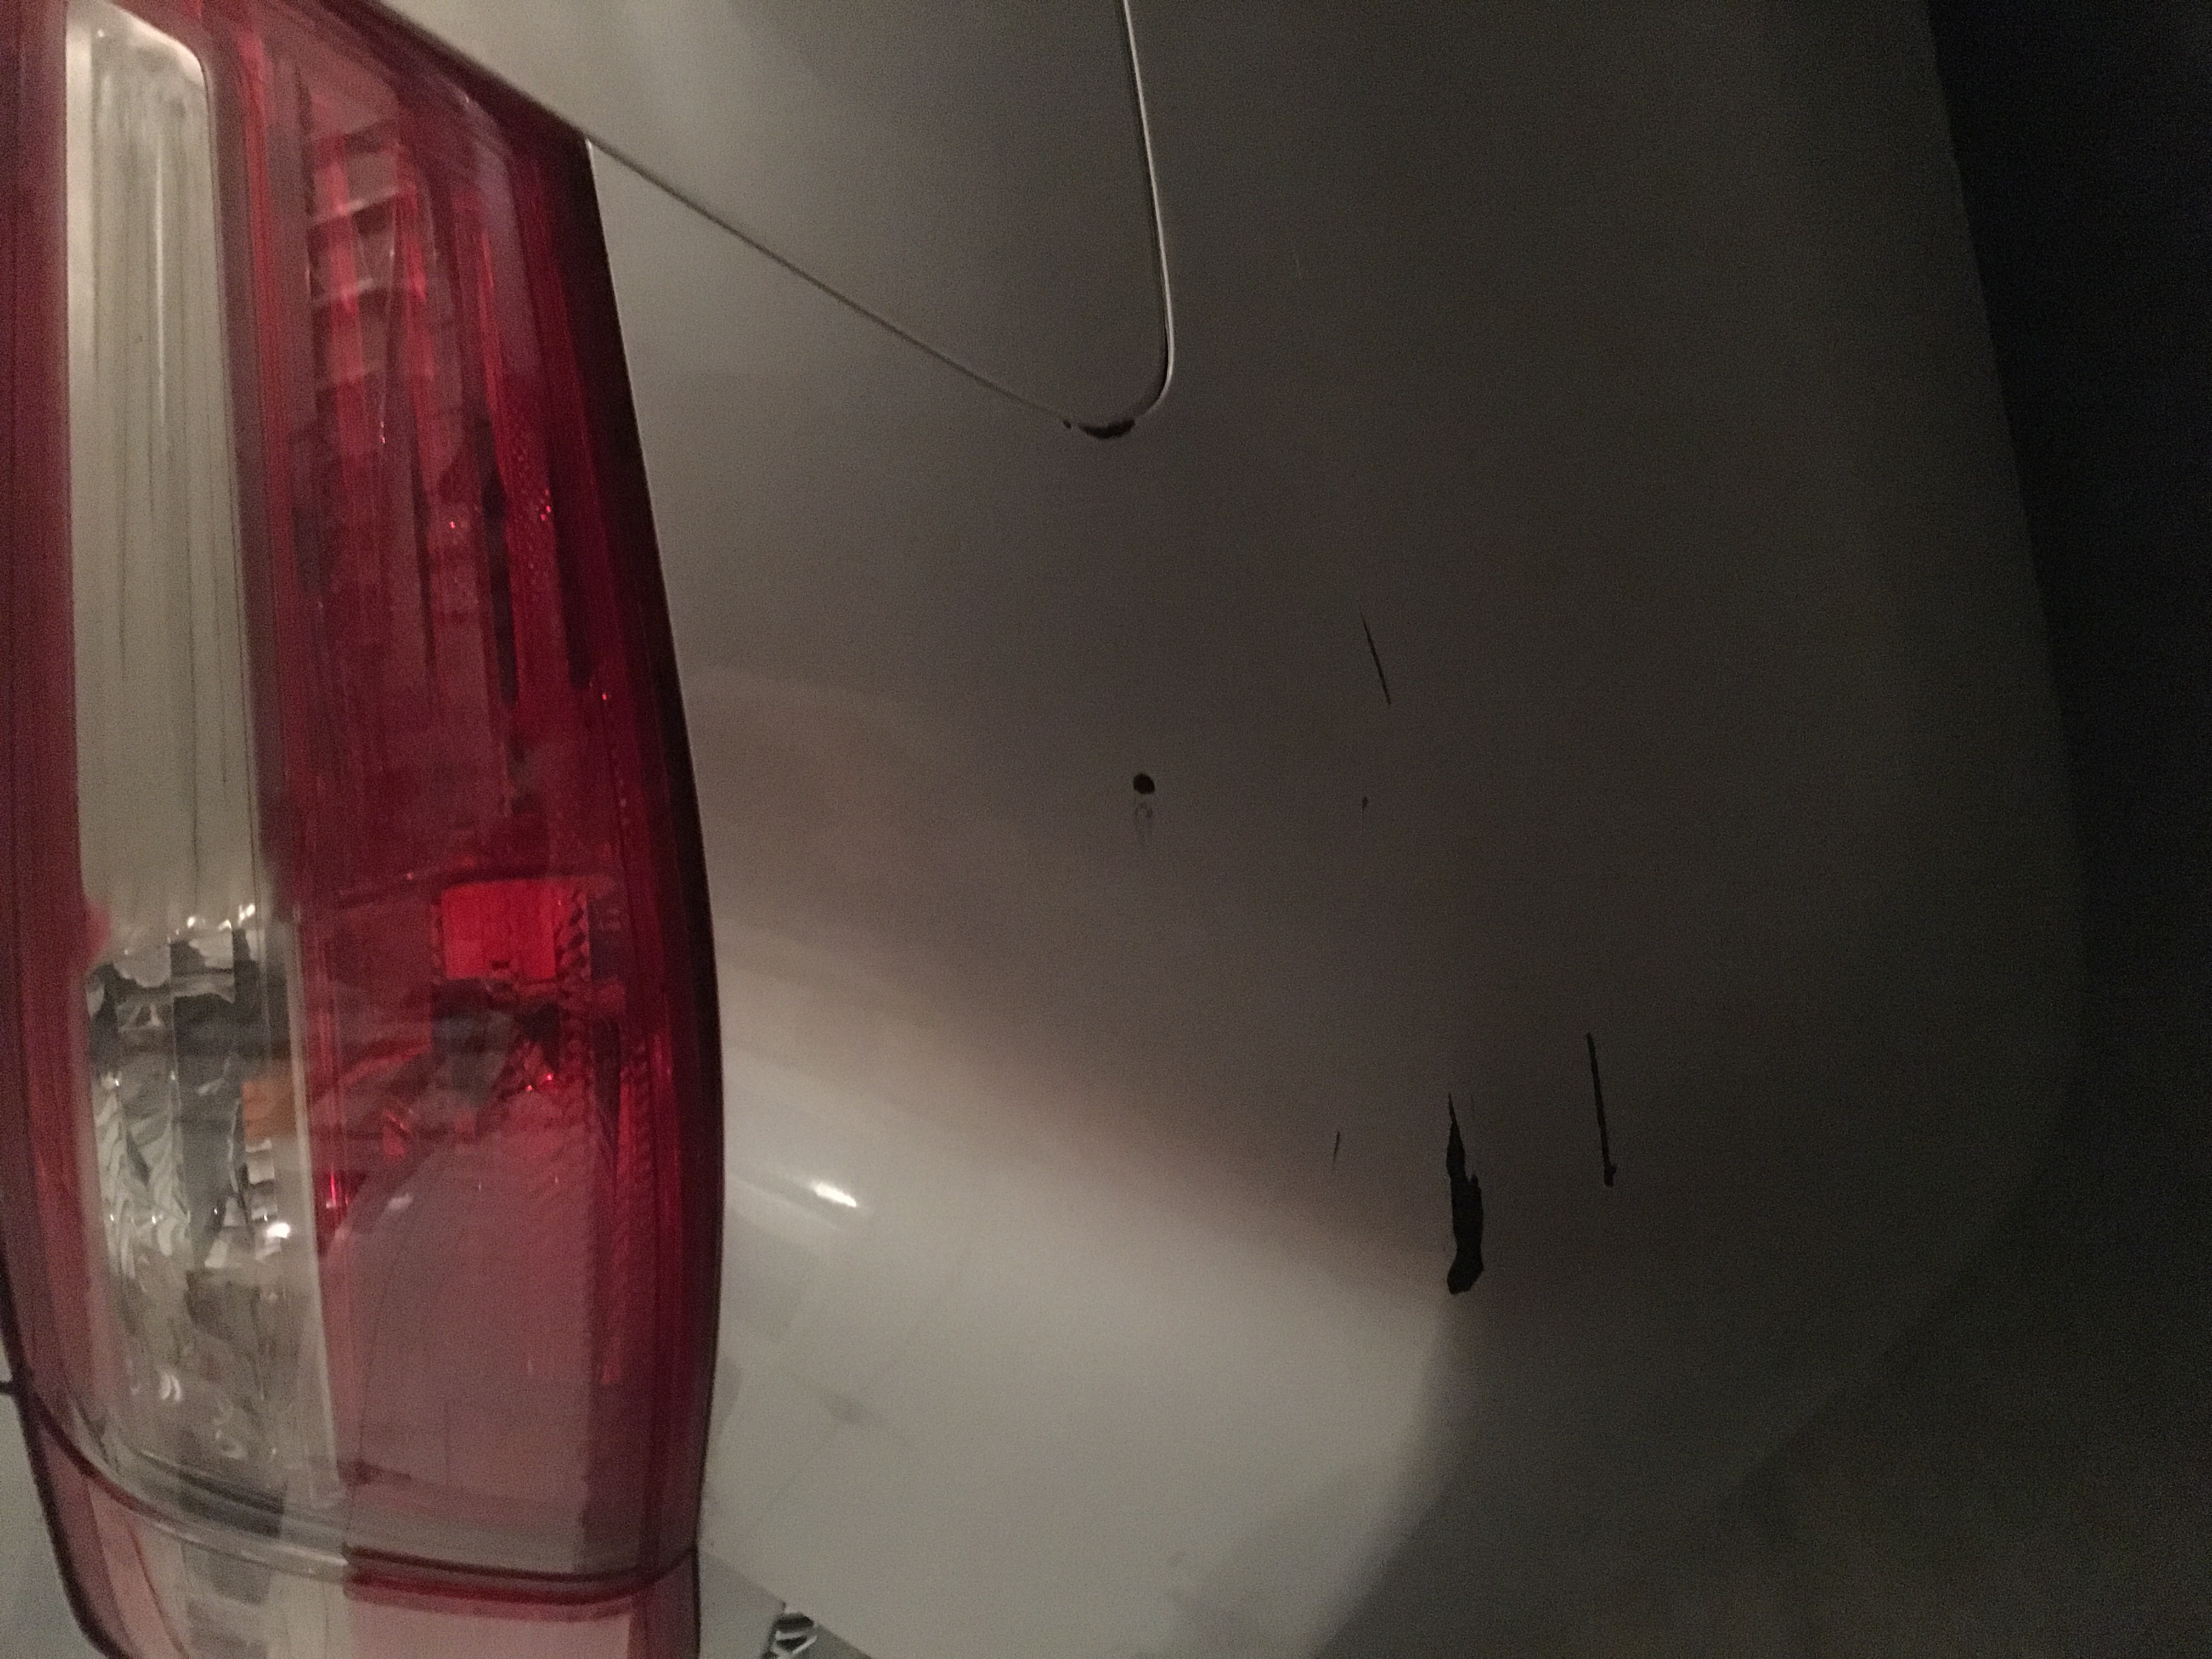 Mom's Camry Right; Rear Bumper Scratches